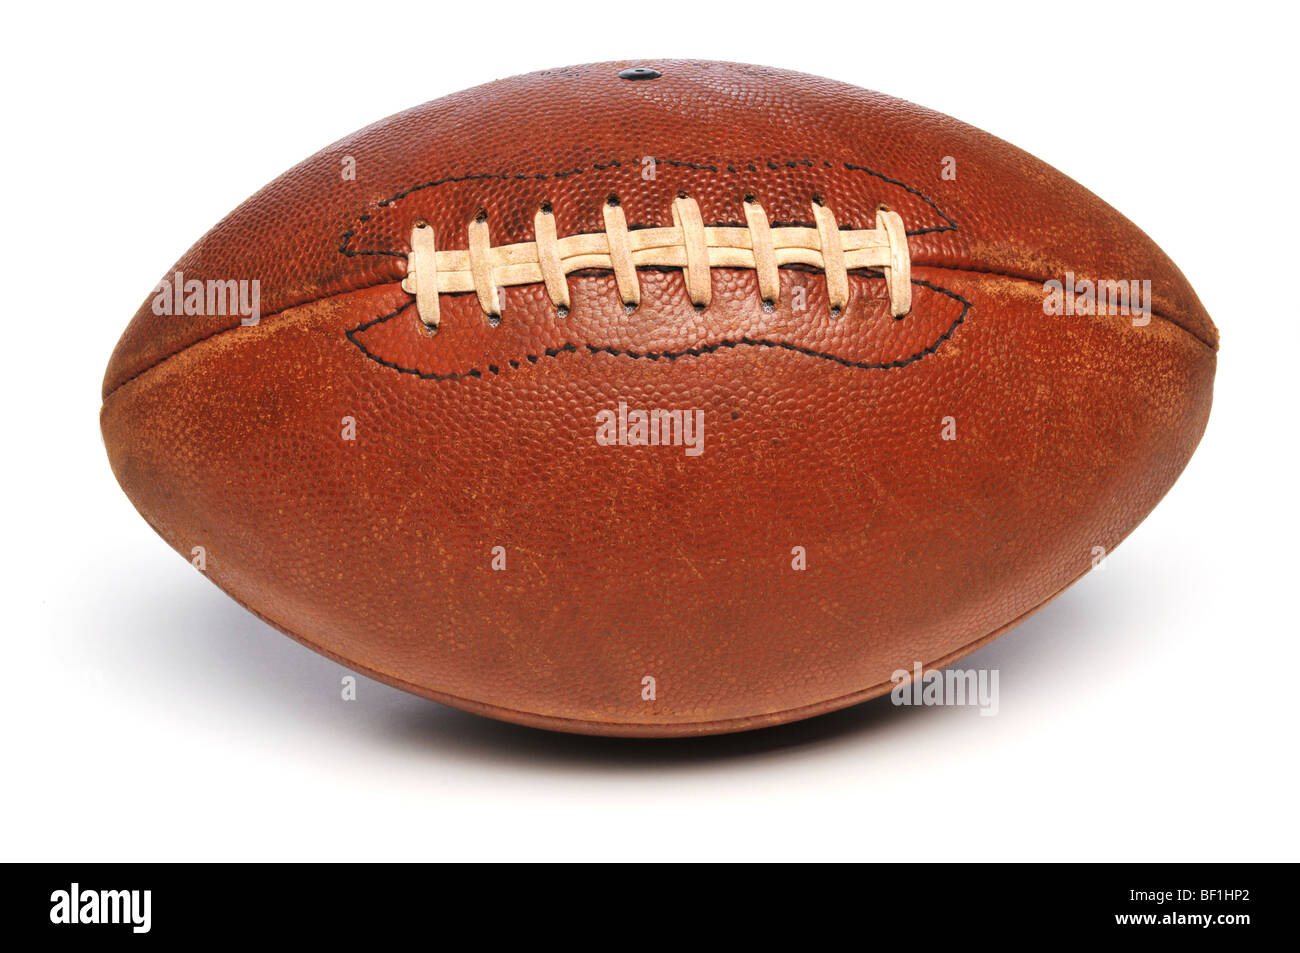 Football close up isolated on a white background - Stock Image